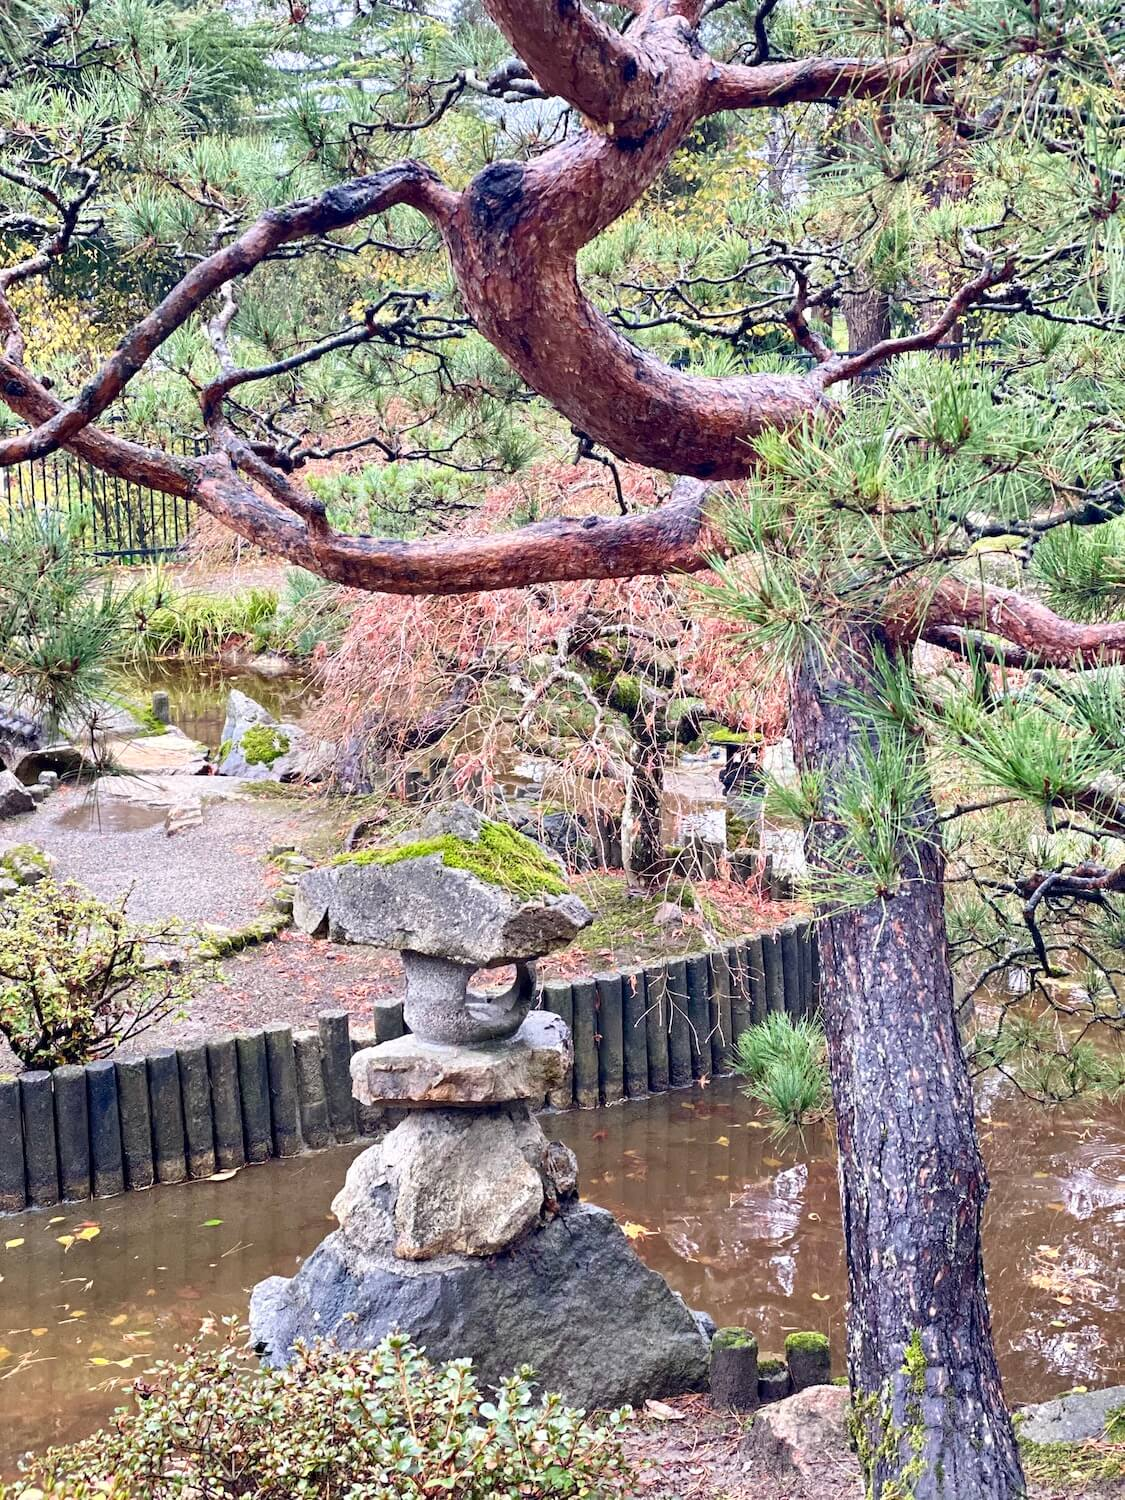 The Japanese Garden at Highline Botanical garden in Seattle showcases a variety of lanterns carved from stone, while an asian pine tree hangs over.